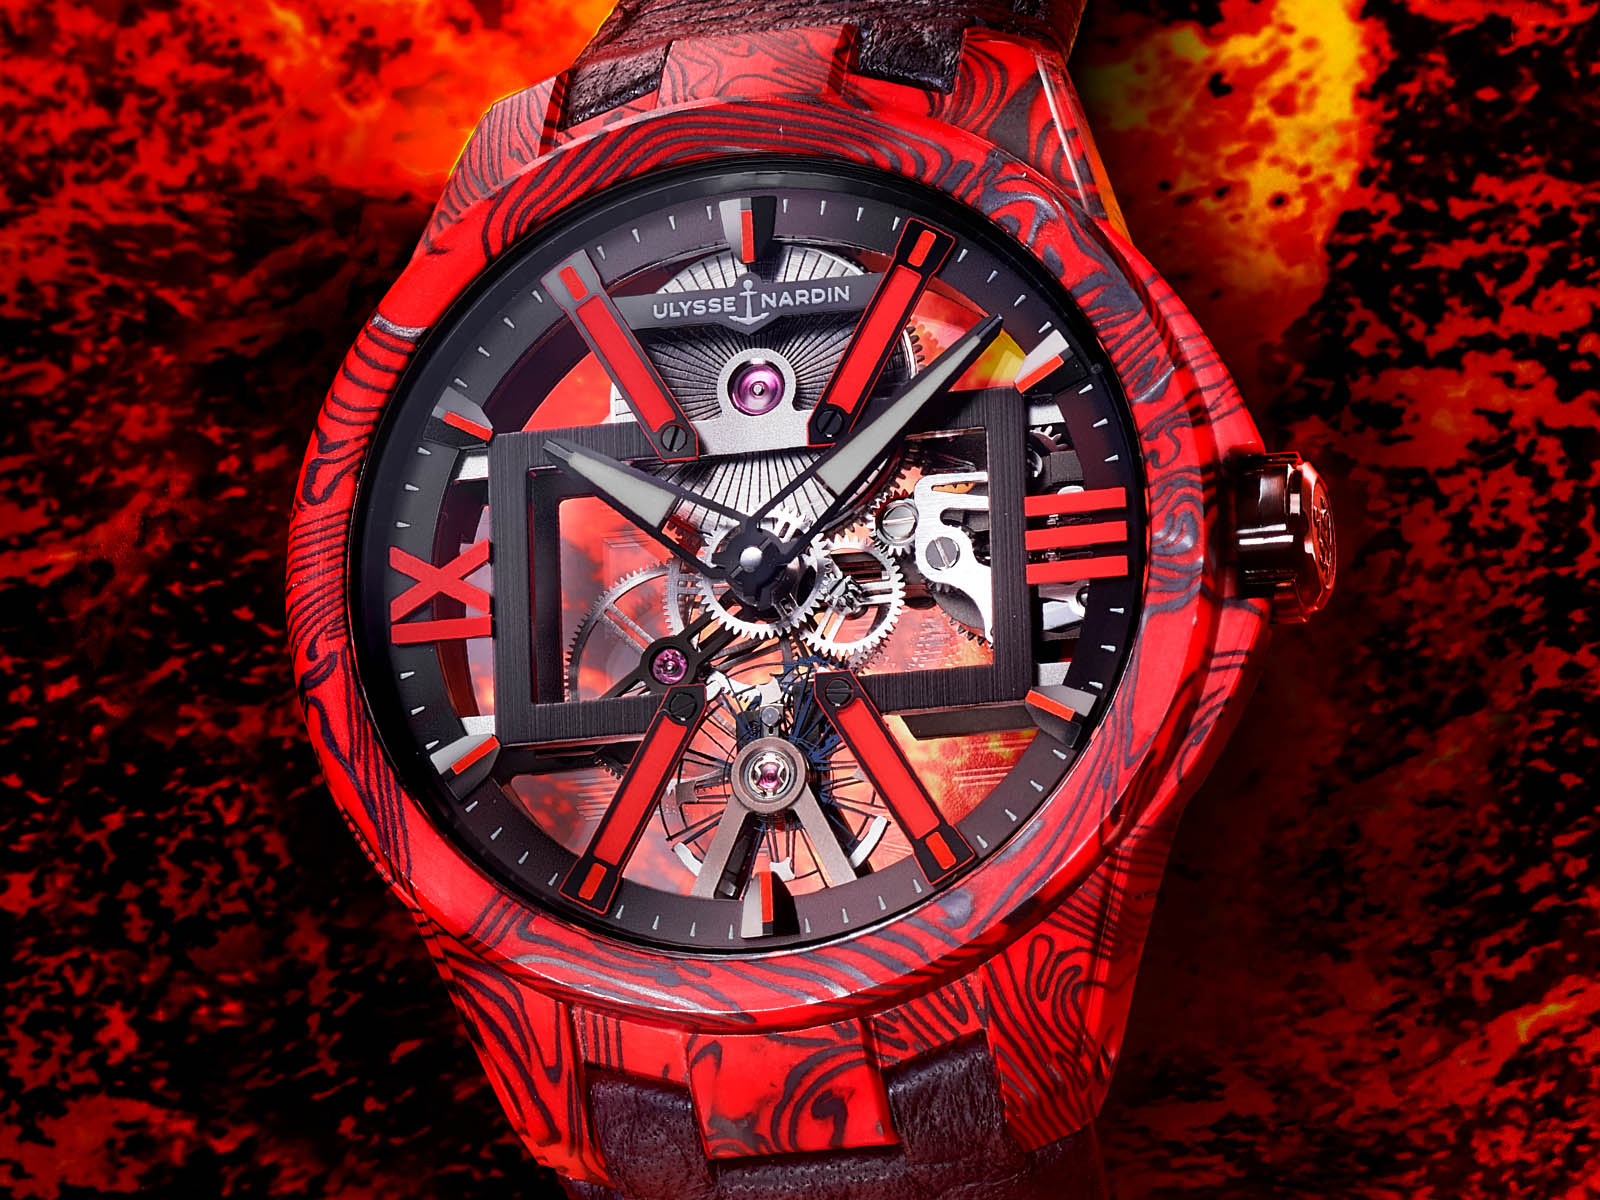 3713-260-magma-ulysse-nardin-executive-skeleton-x-magma-3.jpg